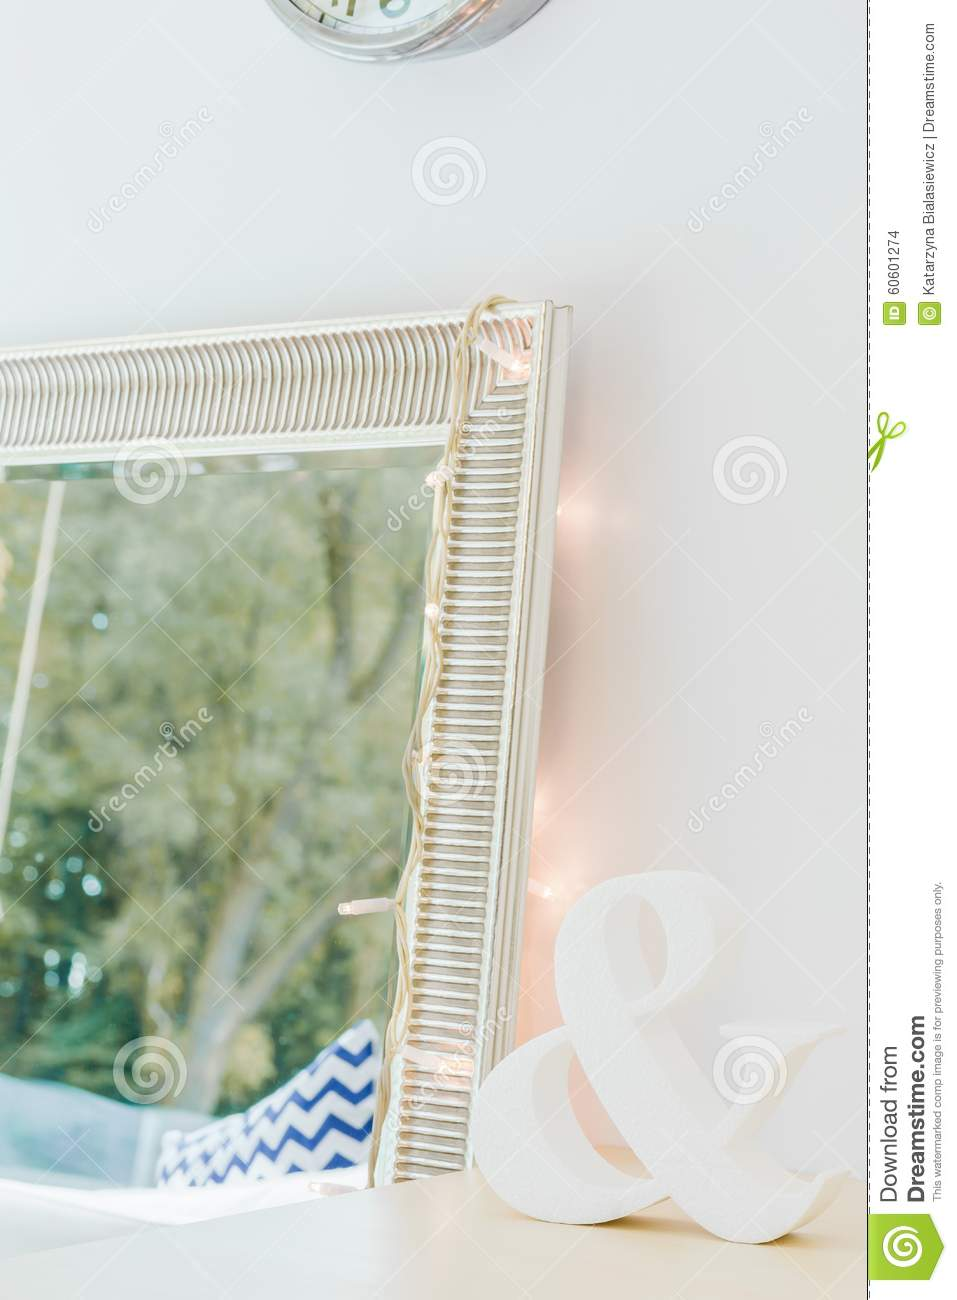 Grand miroir d coratif 6 id es de d coration int rieure for Grand miroir decoratif